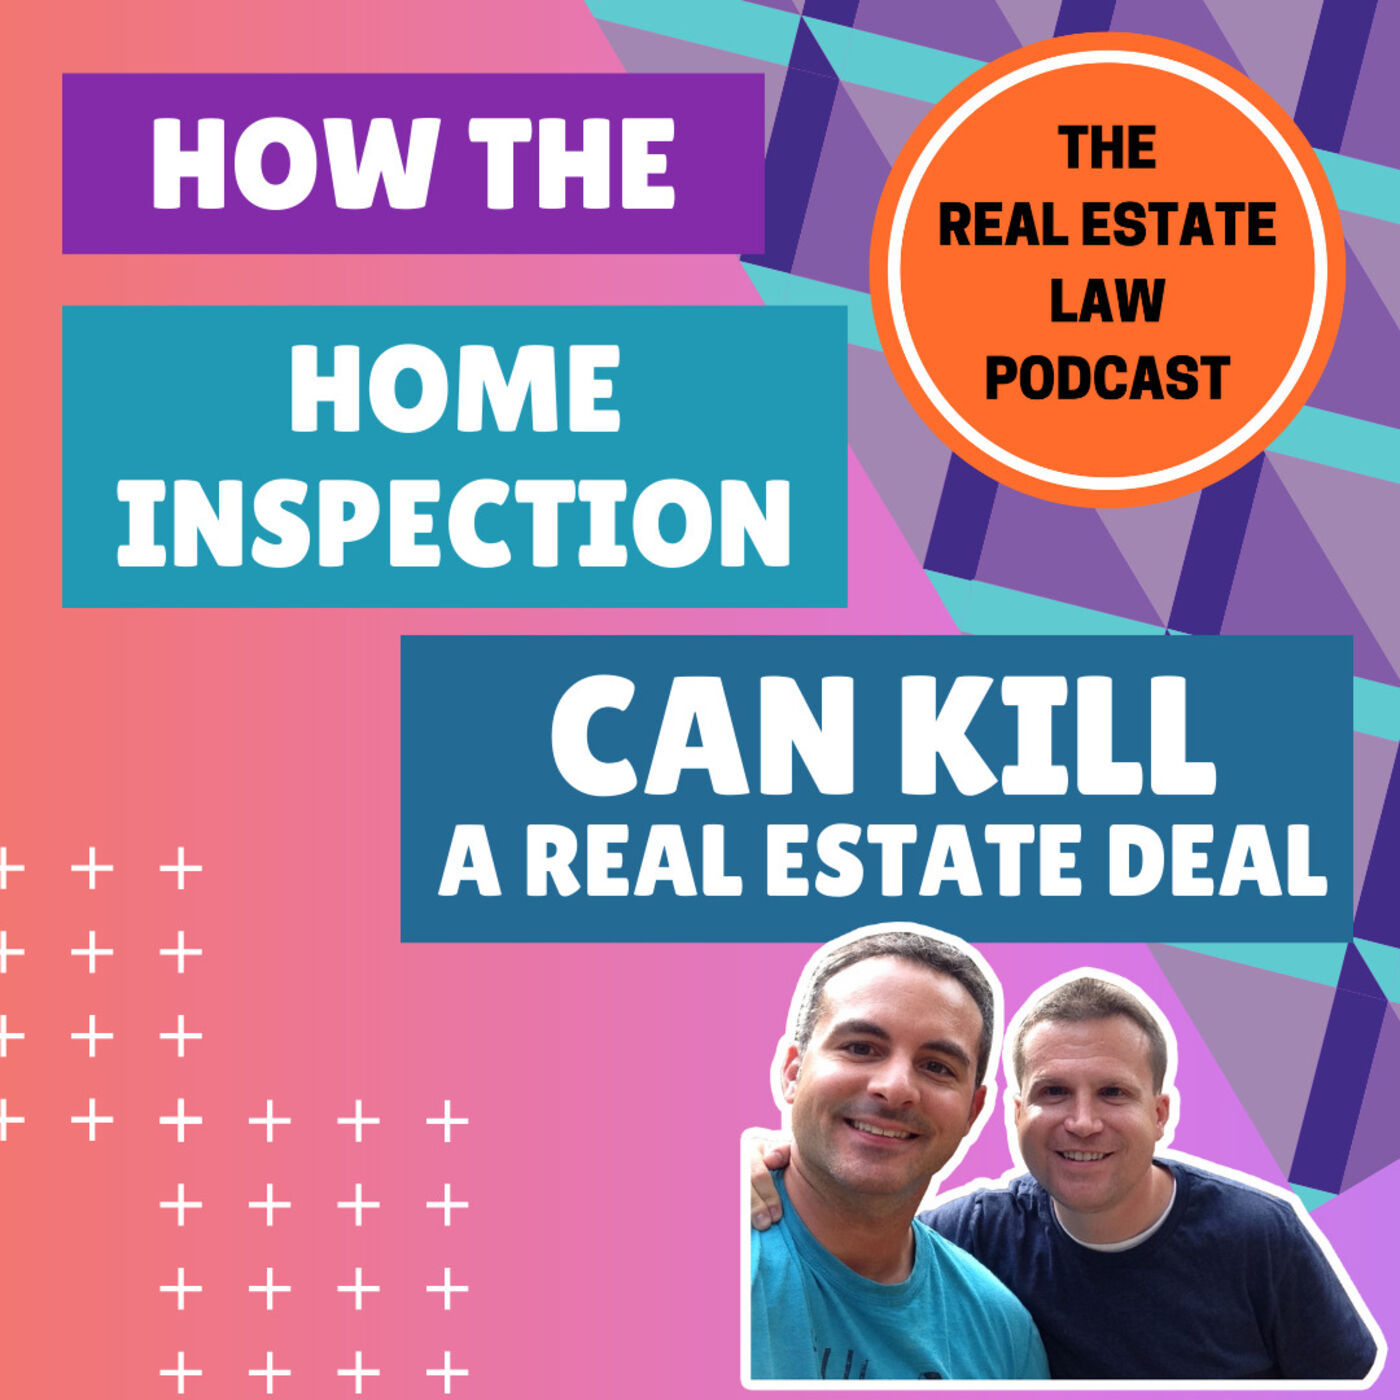 7 - The Many Ways a Home Inspection Can Kill a Deal